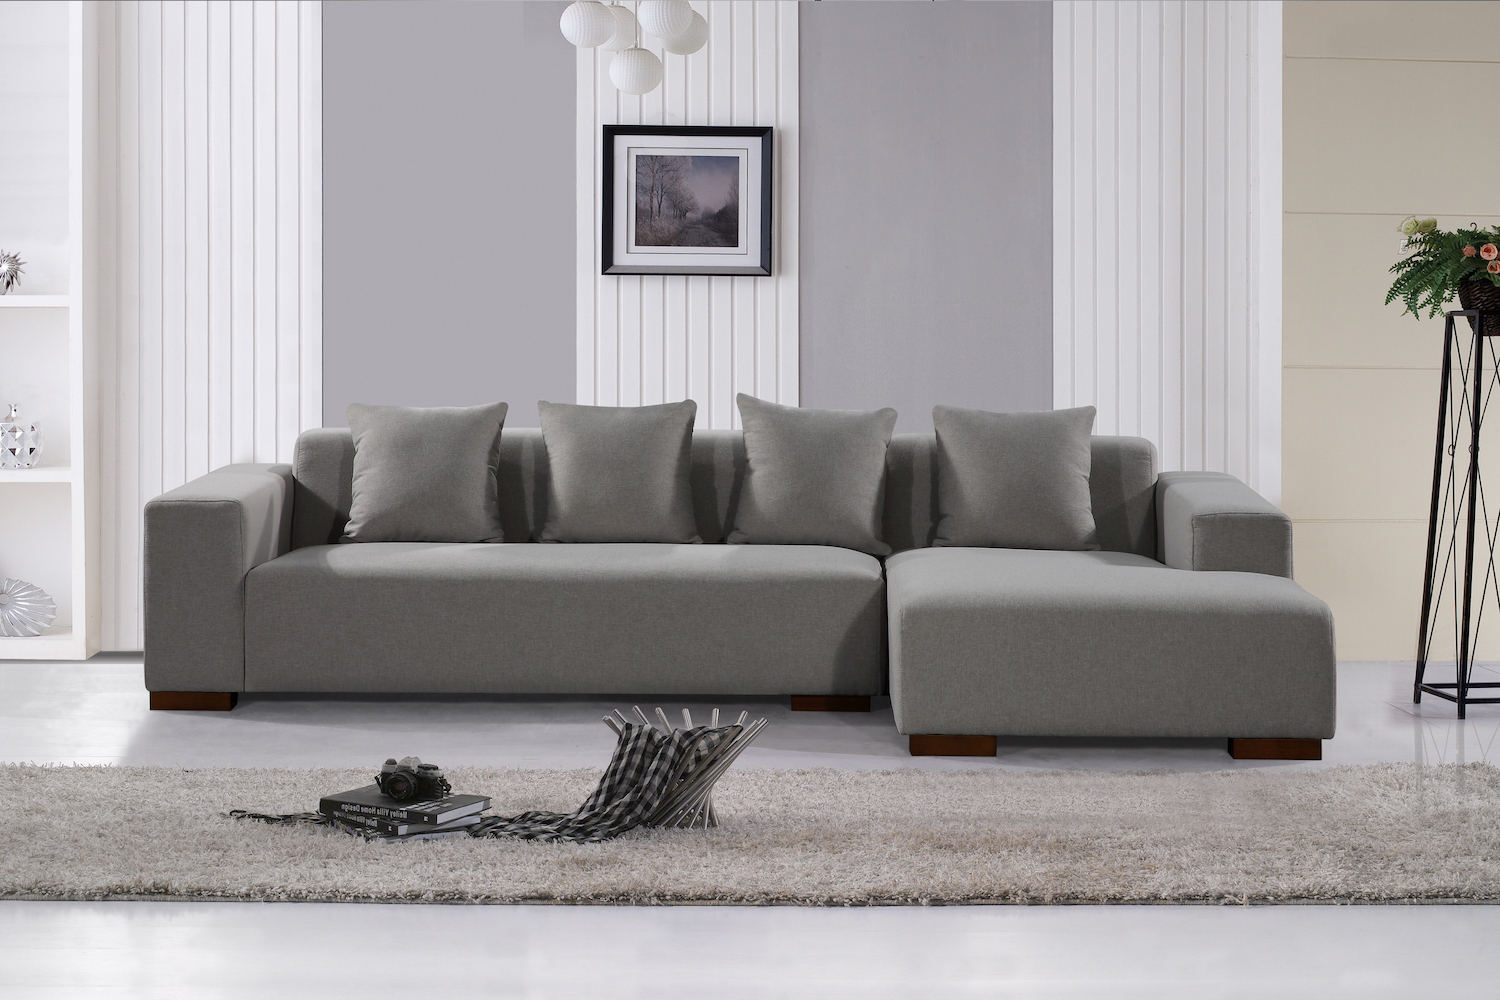 Deep Seating Sectional Sofa – Light Grey Fabric With Widely Used Noa Sectional Sofas With Ottoman Gray (View 14 of 25)